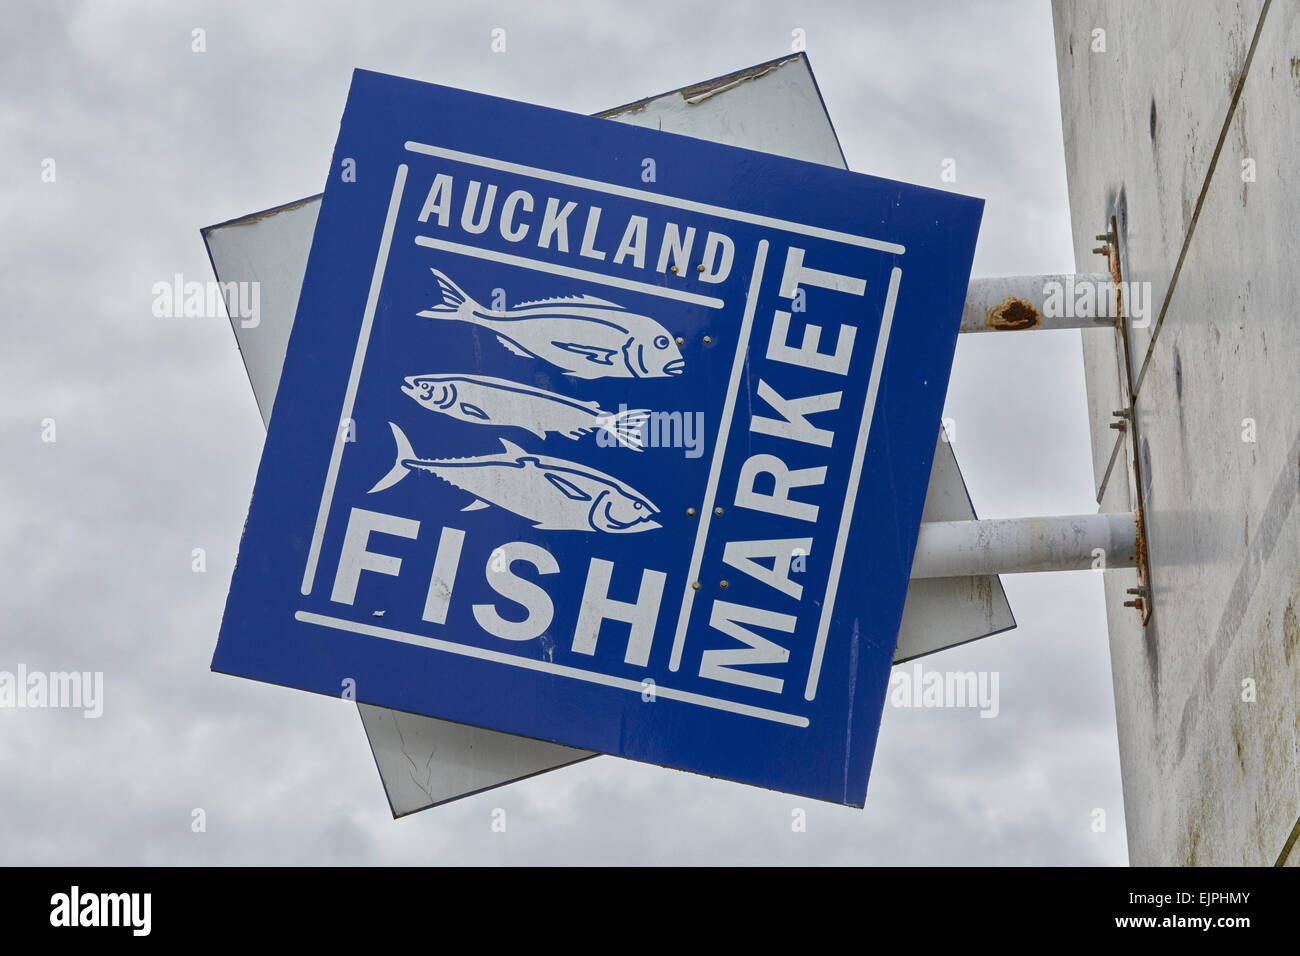 Auckland Fish Market sign, Auckland, North Island, New Zealand - Stock Image